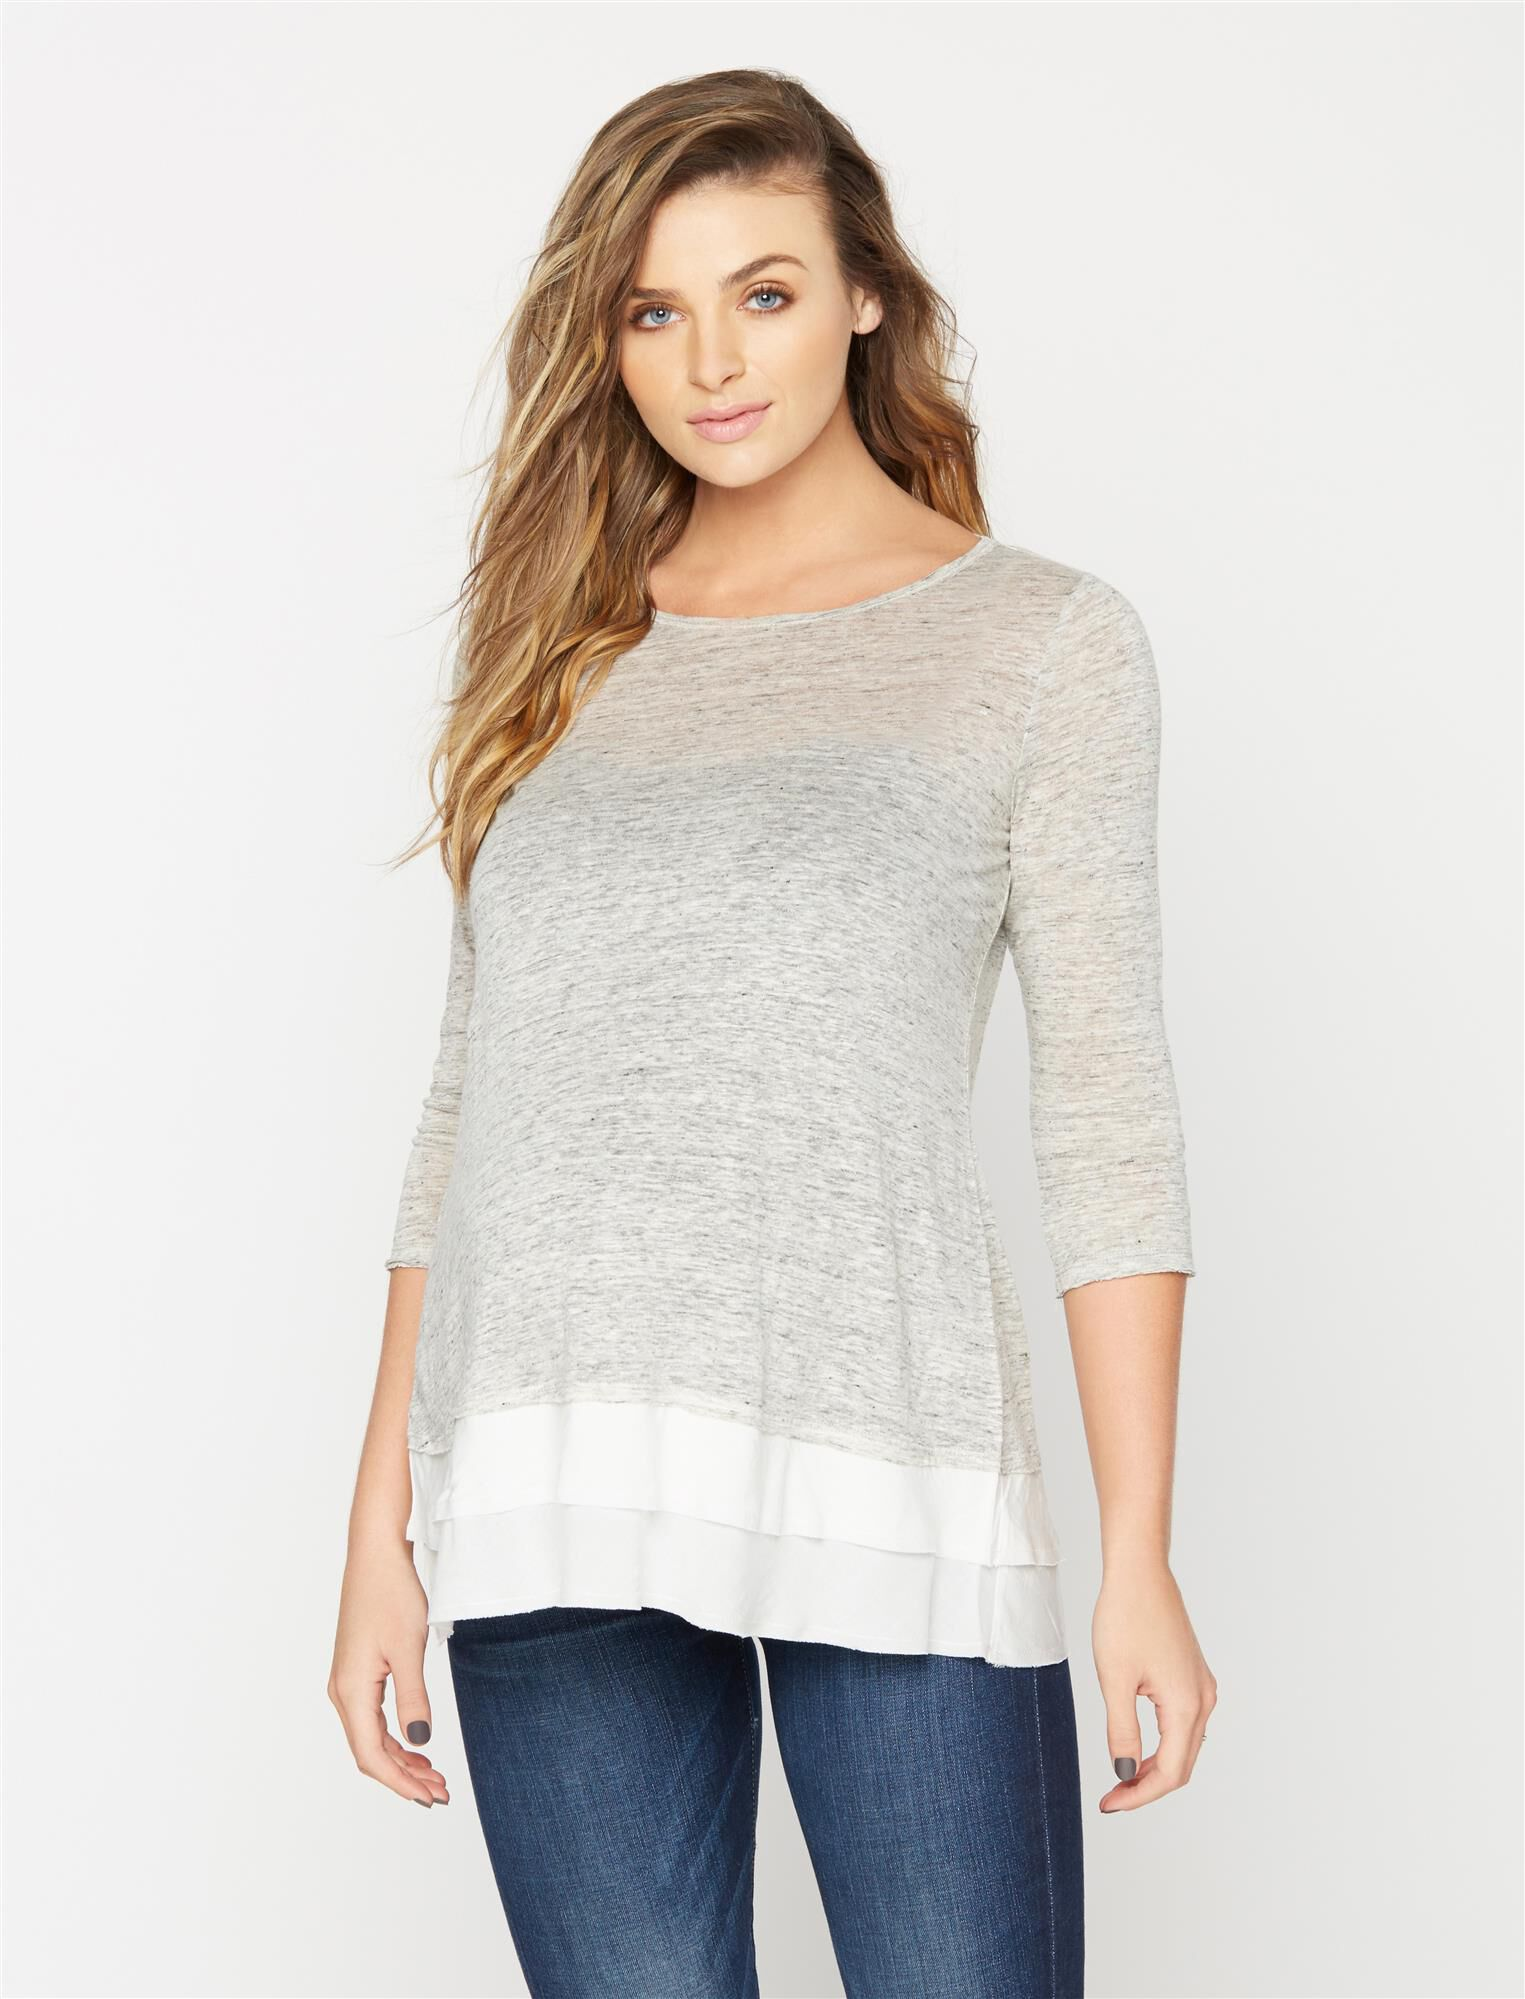 Knit Woven 3/4 Sleeve Maternity Top